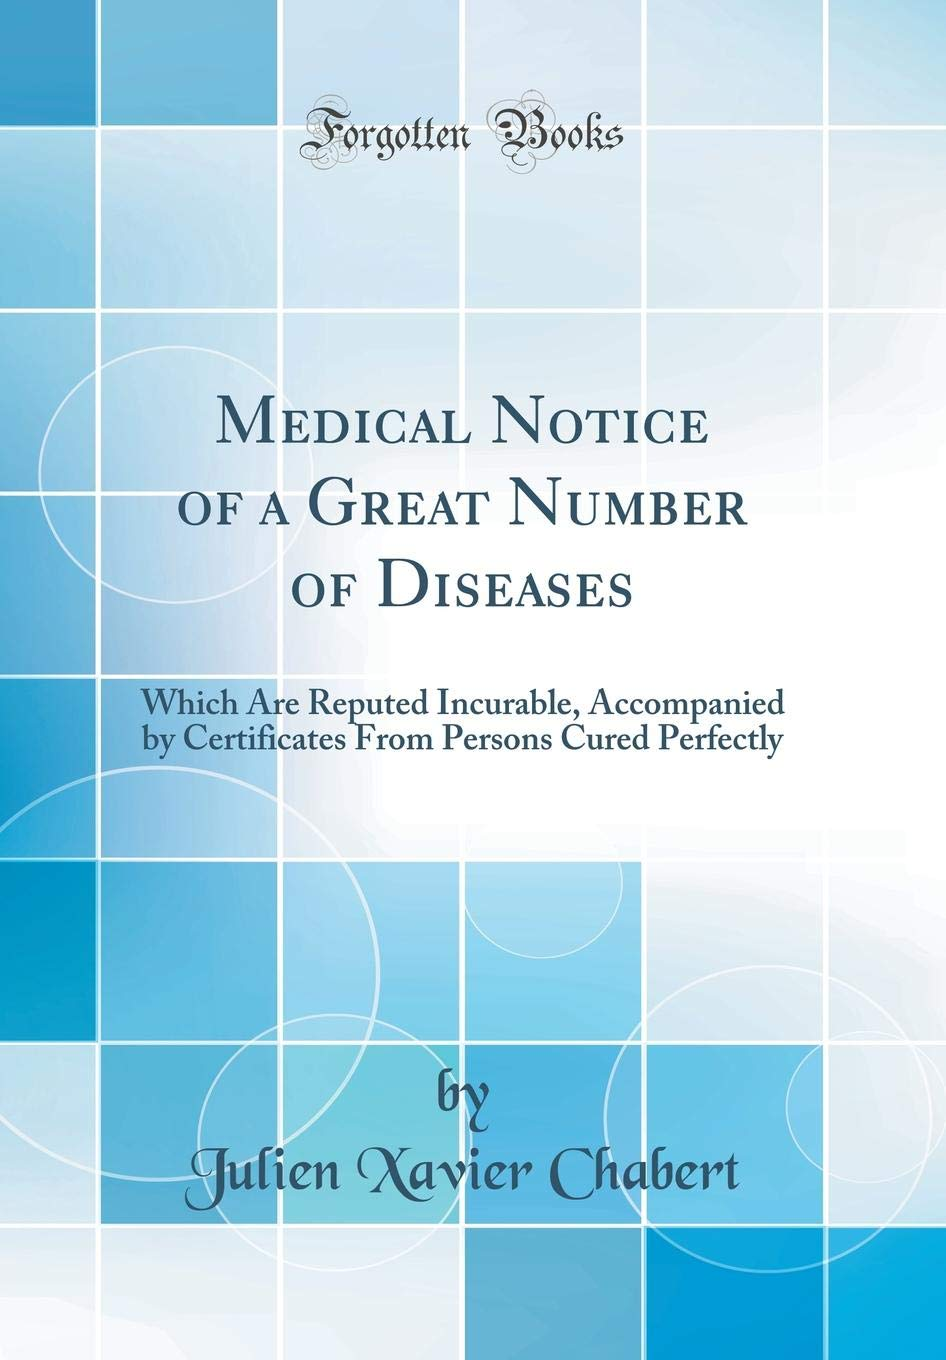 Medical Notice of a Great Number of Diseases: Which Are